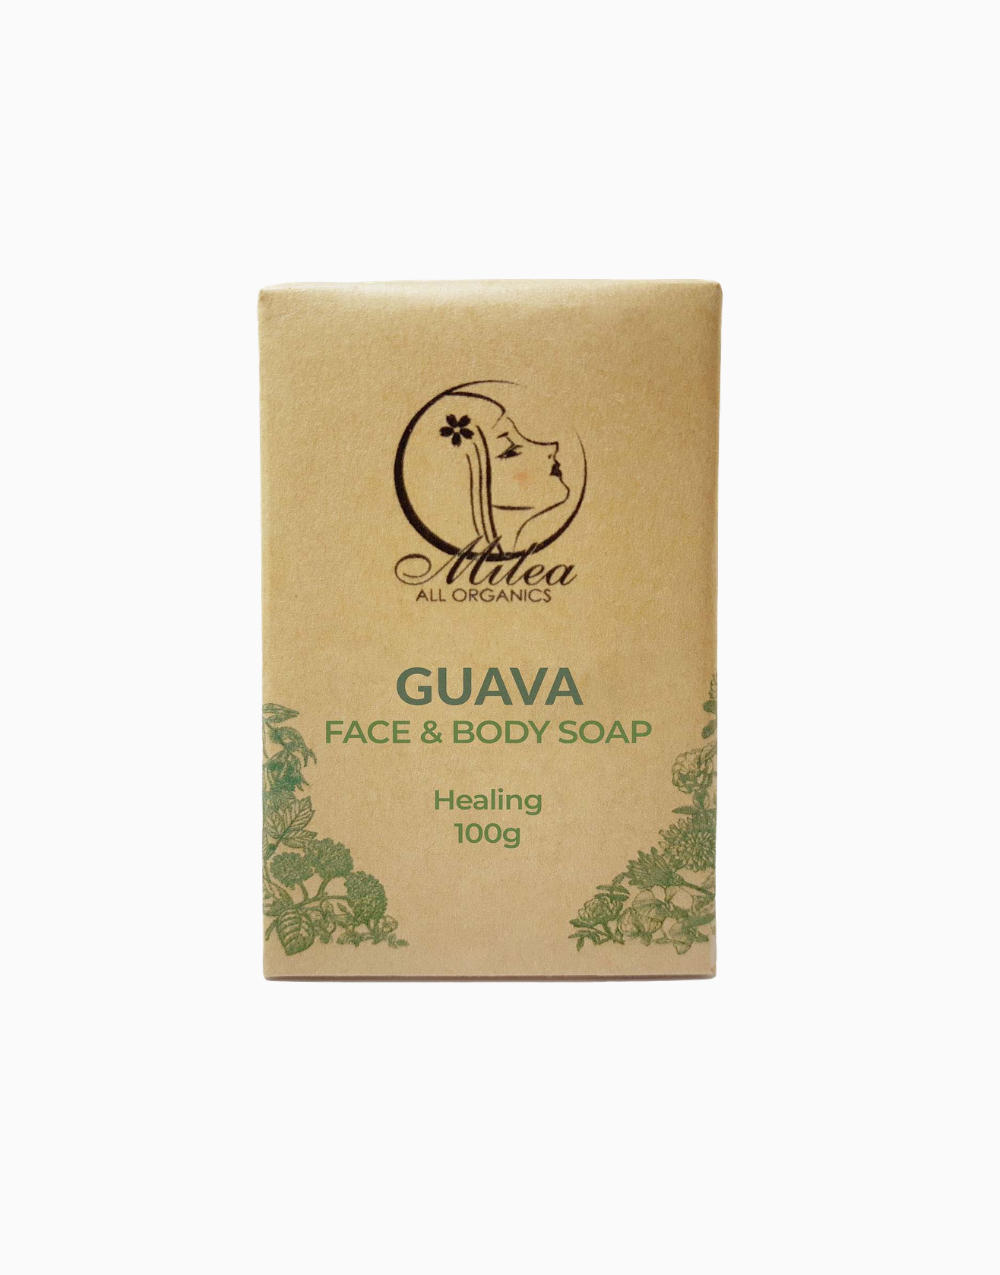 All Organics Guava Soap (100g) by Milea